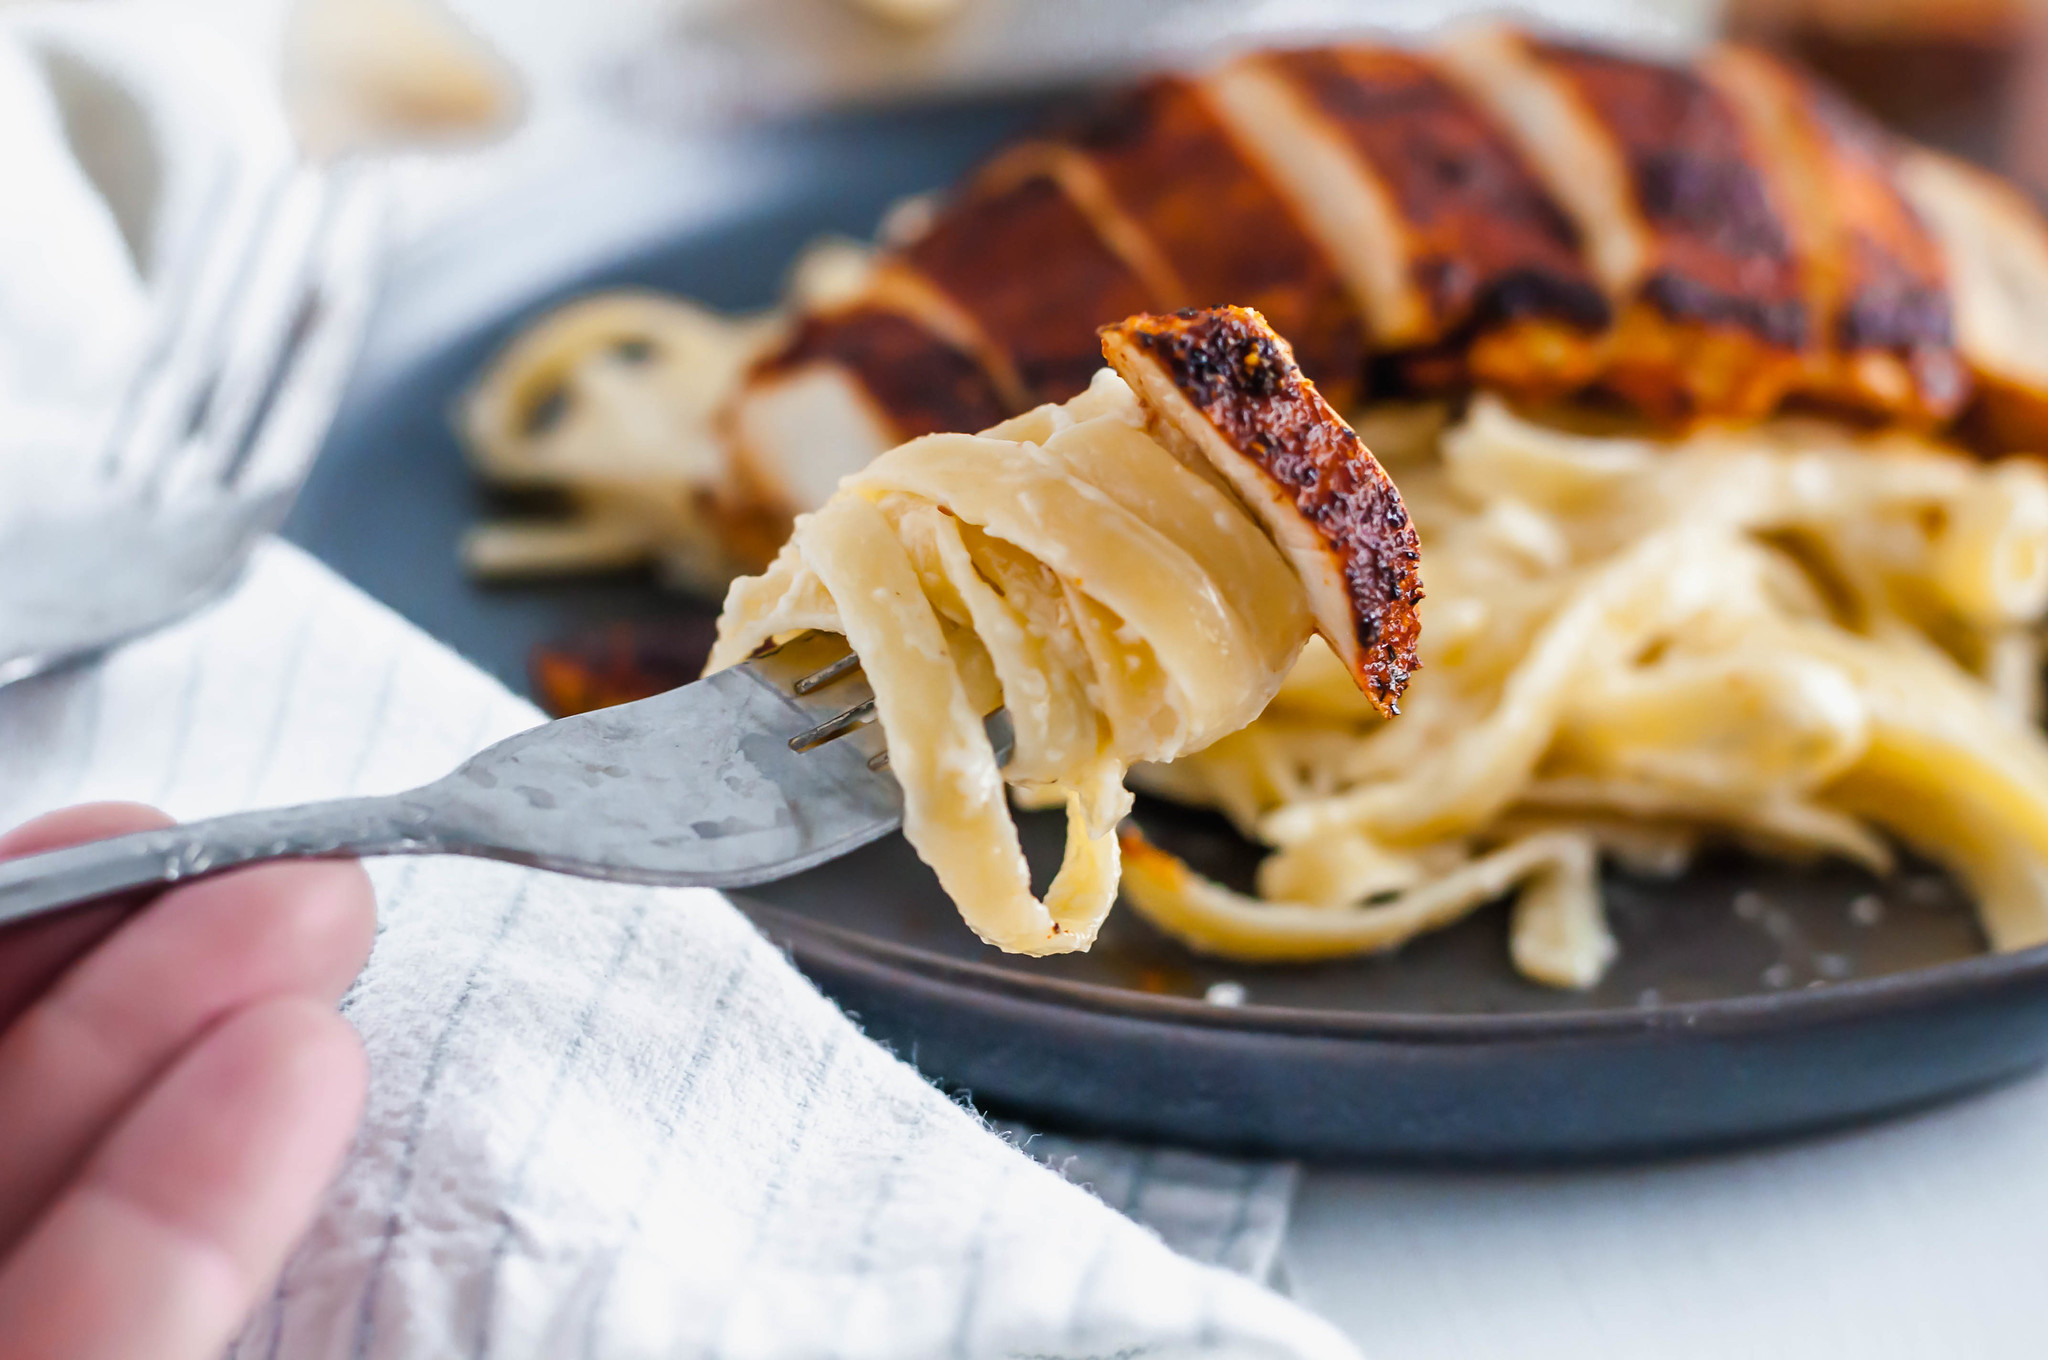 This Blackened Chicken Alfredo is the ultimate weeknight meal. Done in 30 minutes and packed with flavor. Easy enough for any weeknight but fancy enough for guests too. Homemade blackening seasoning covered tender chicken cutlets served over simple, cheesy homemade fettucine alfredo.